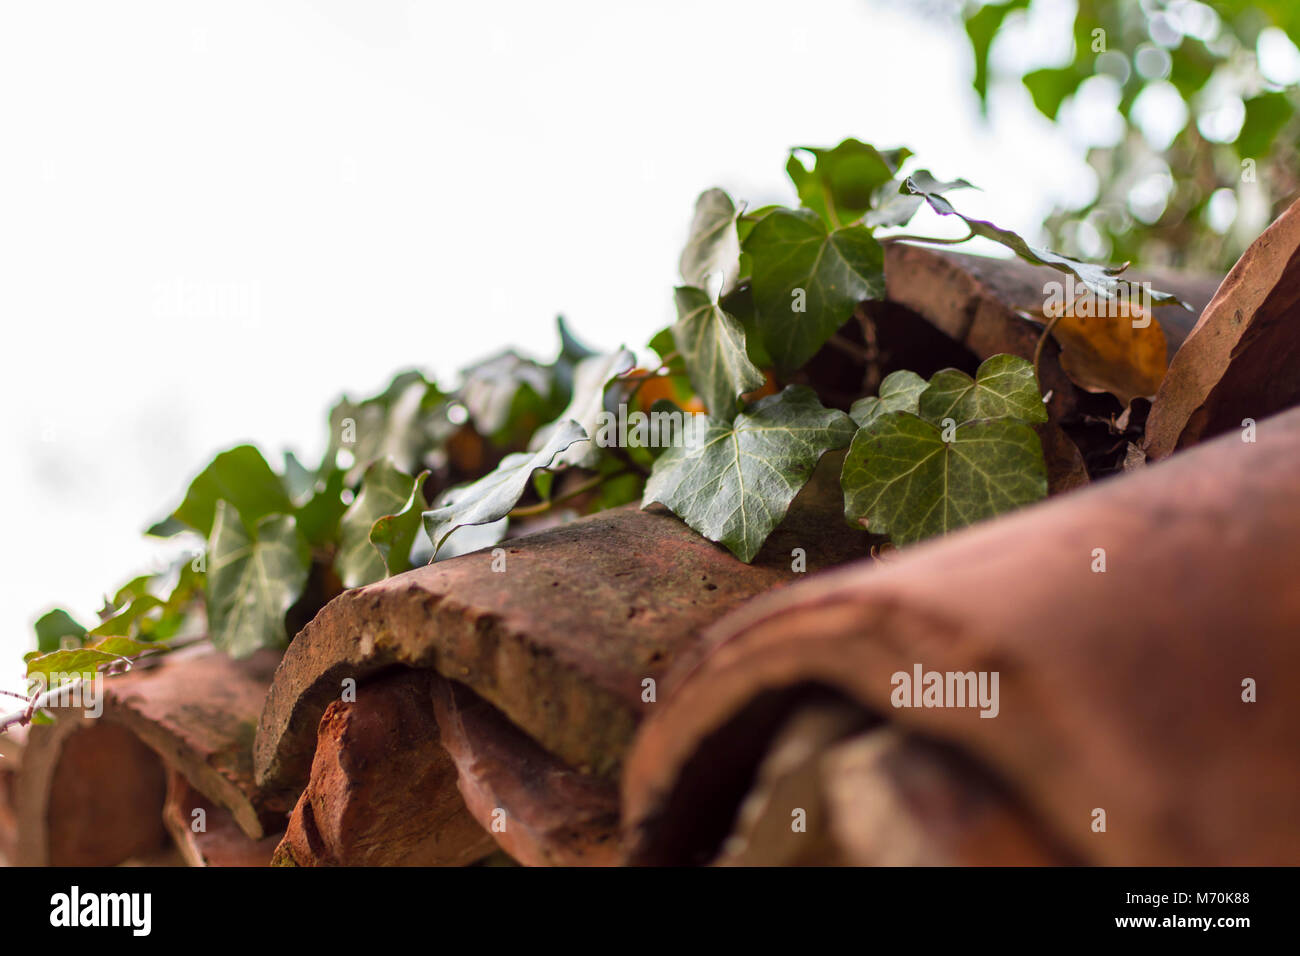 Ivy sprawling on worn-out roof tiles - Stock Image